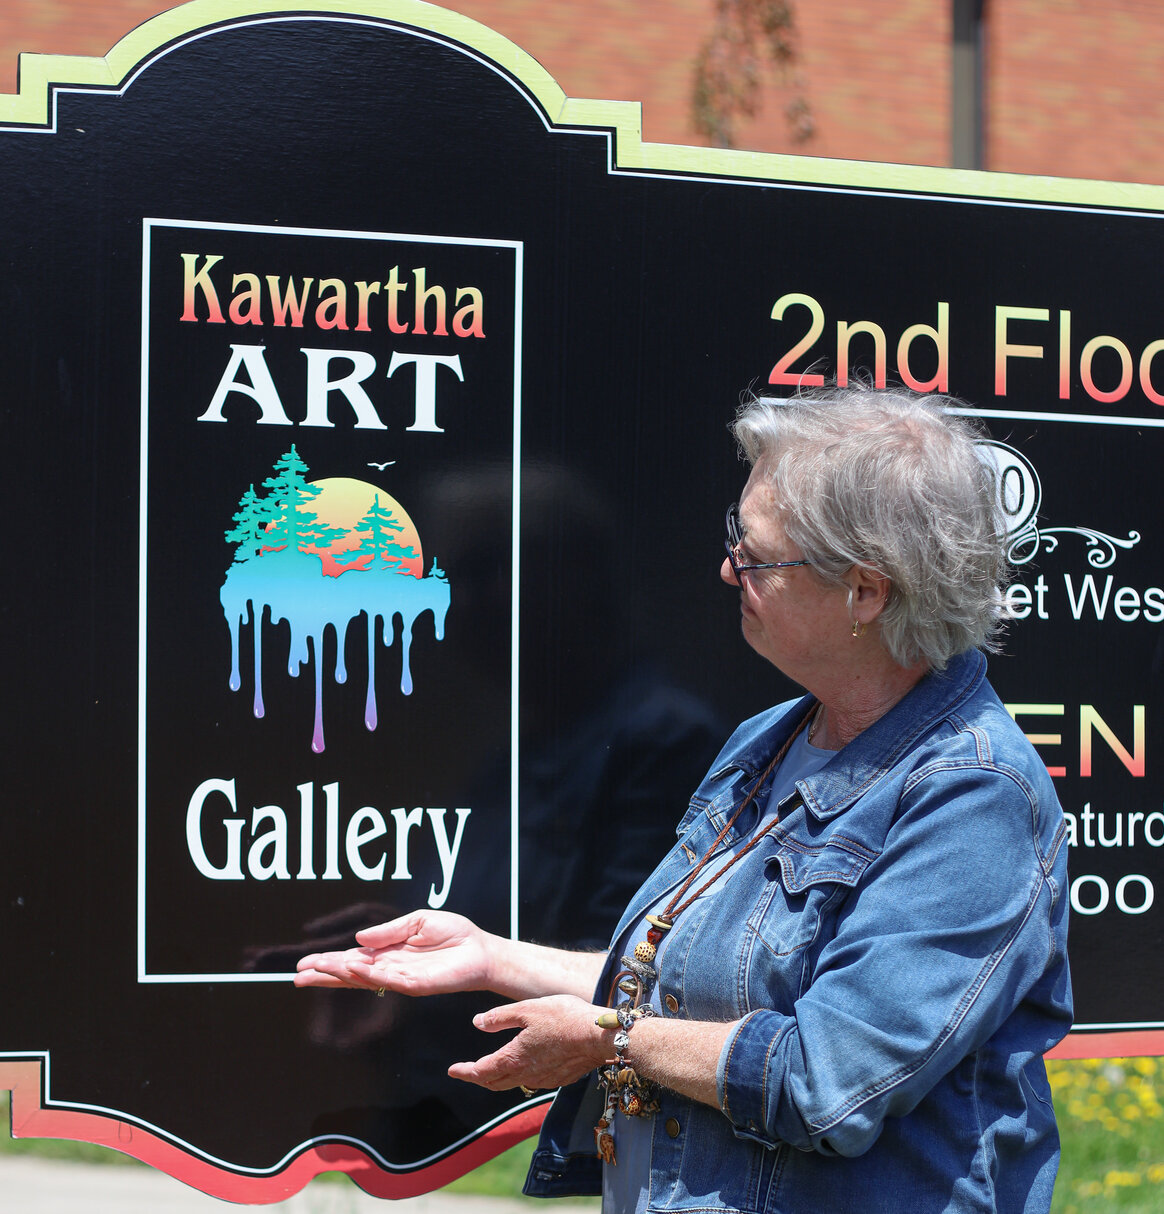 The art in community: Does Kawartha Lakes support culture as well as it could?